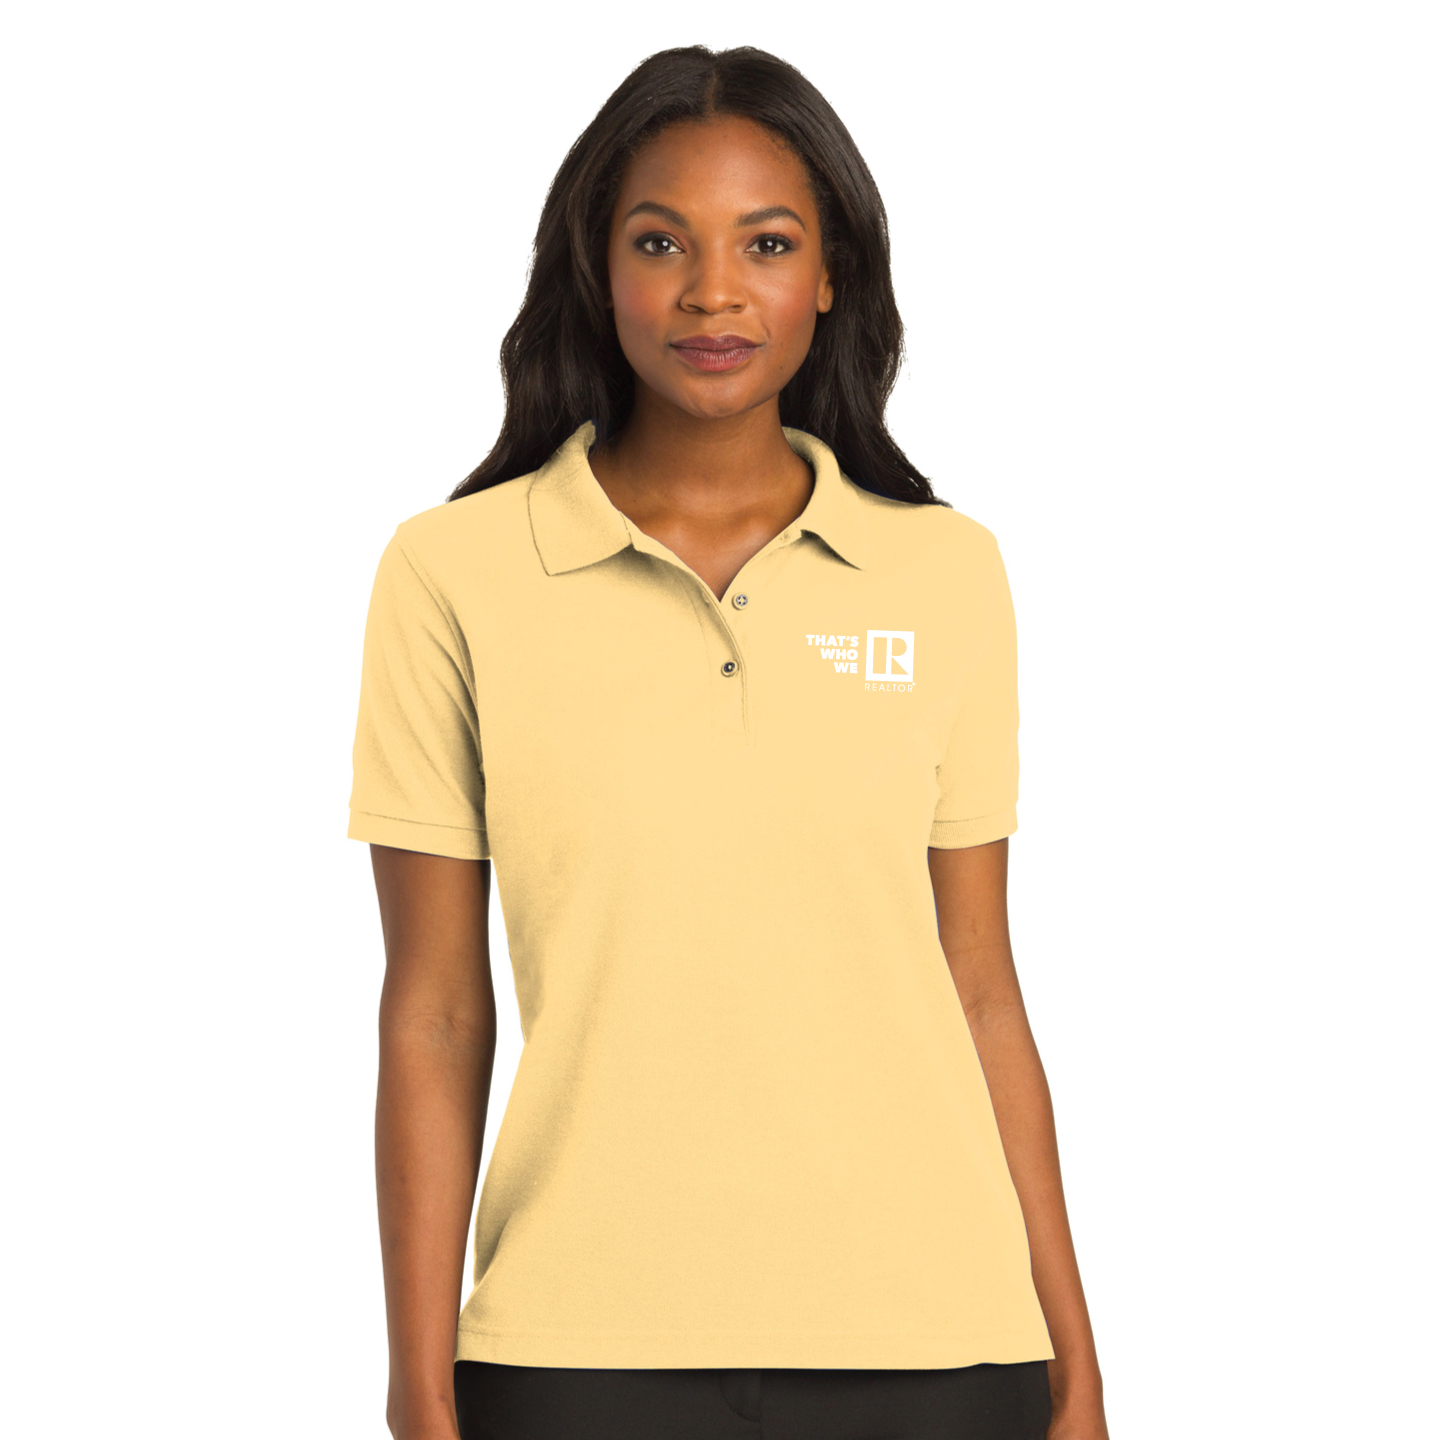 """Thats Who We R"" Ladies Pique Polo Shirt Twwr,Thats,Whos,We,Area,Golfs, Shirts, Collared, Polos, Plackets"